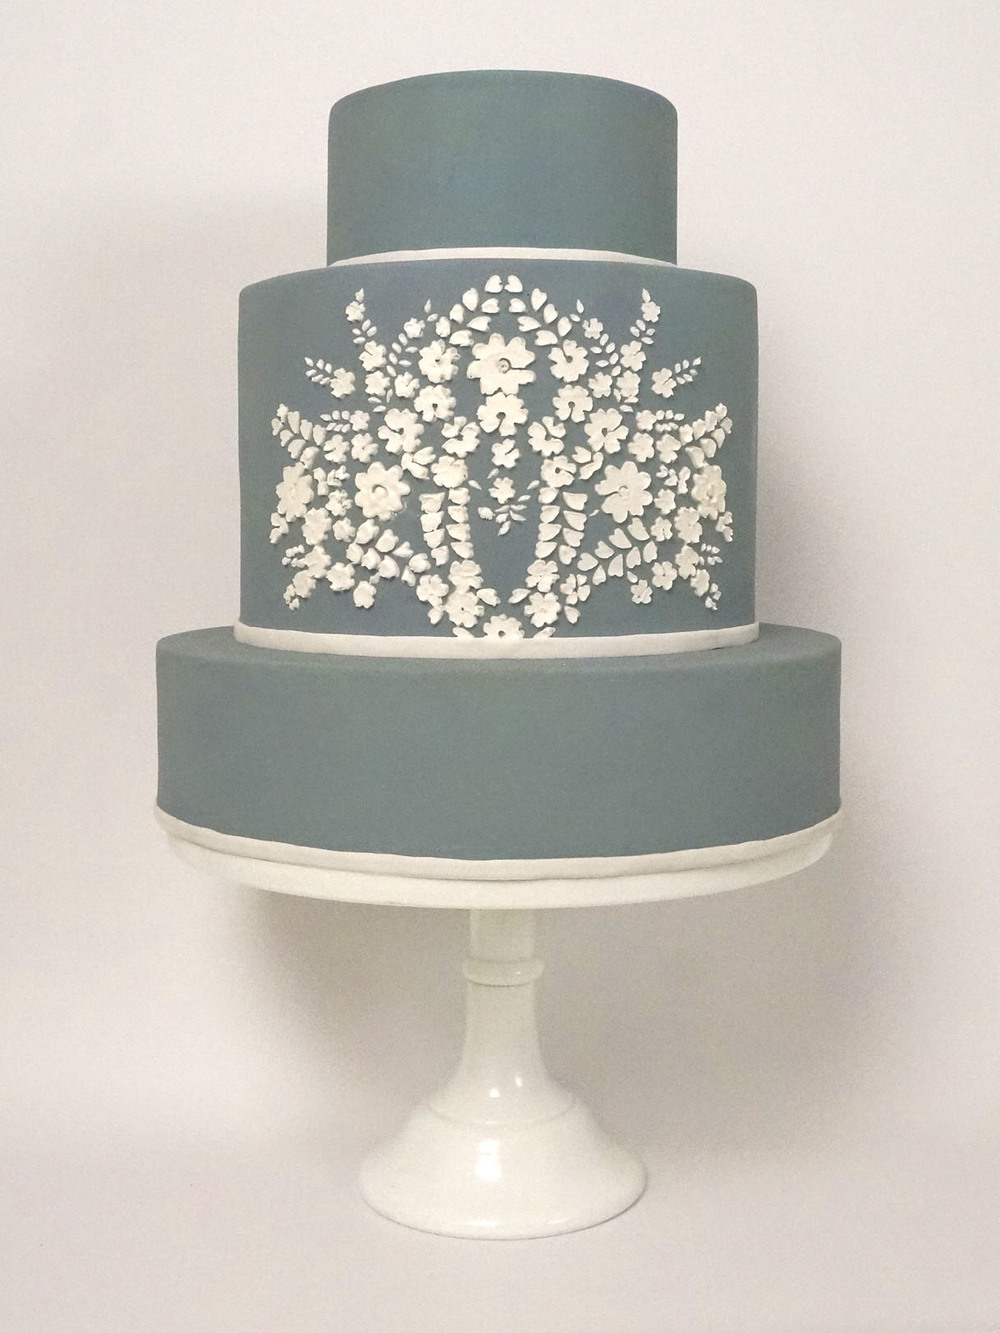 wedgwood-blue-gray-lace-wedding-cake-baltimore-maryland.jpg